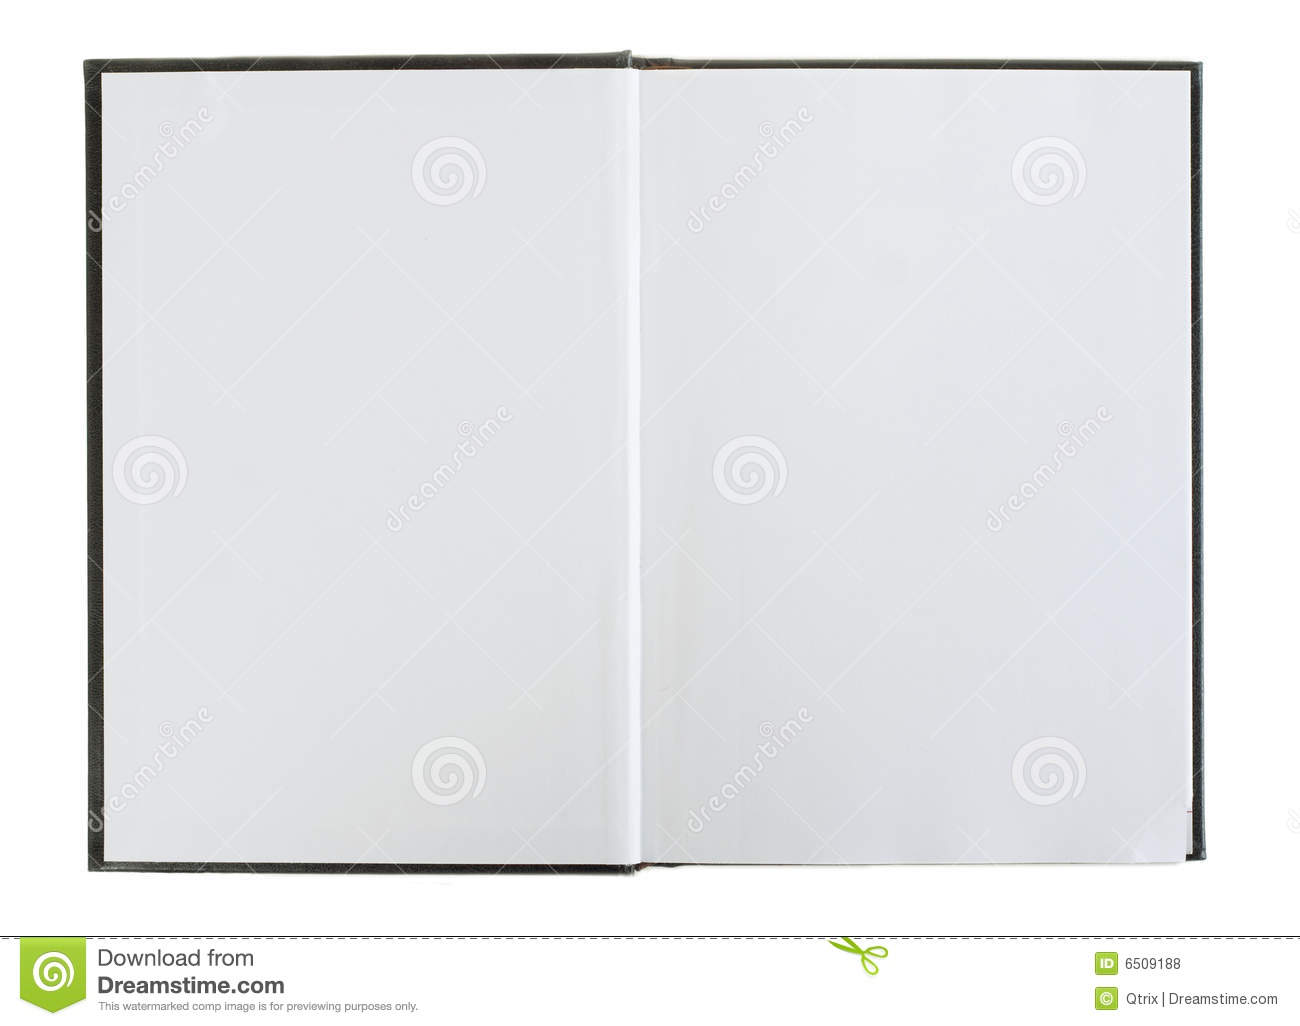 clipart open book blank pages - photo #43